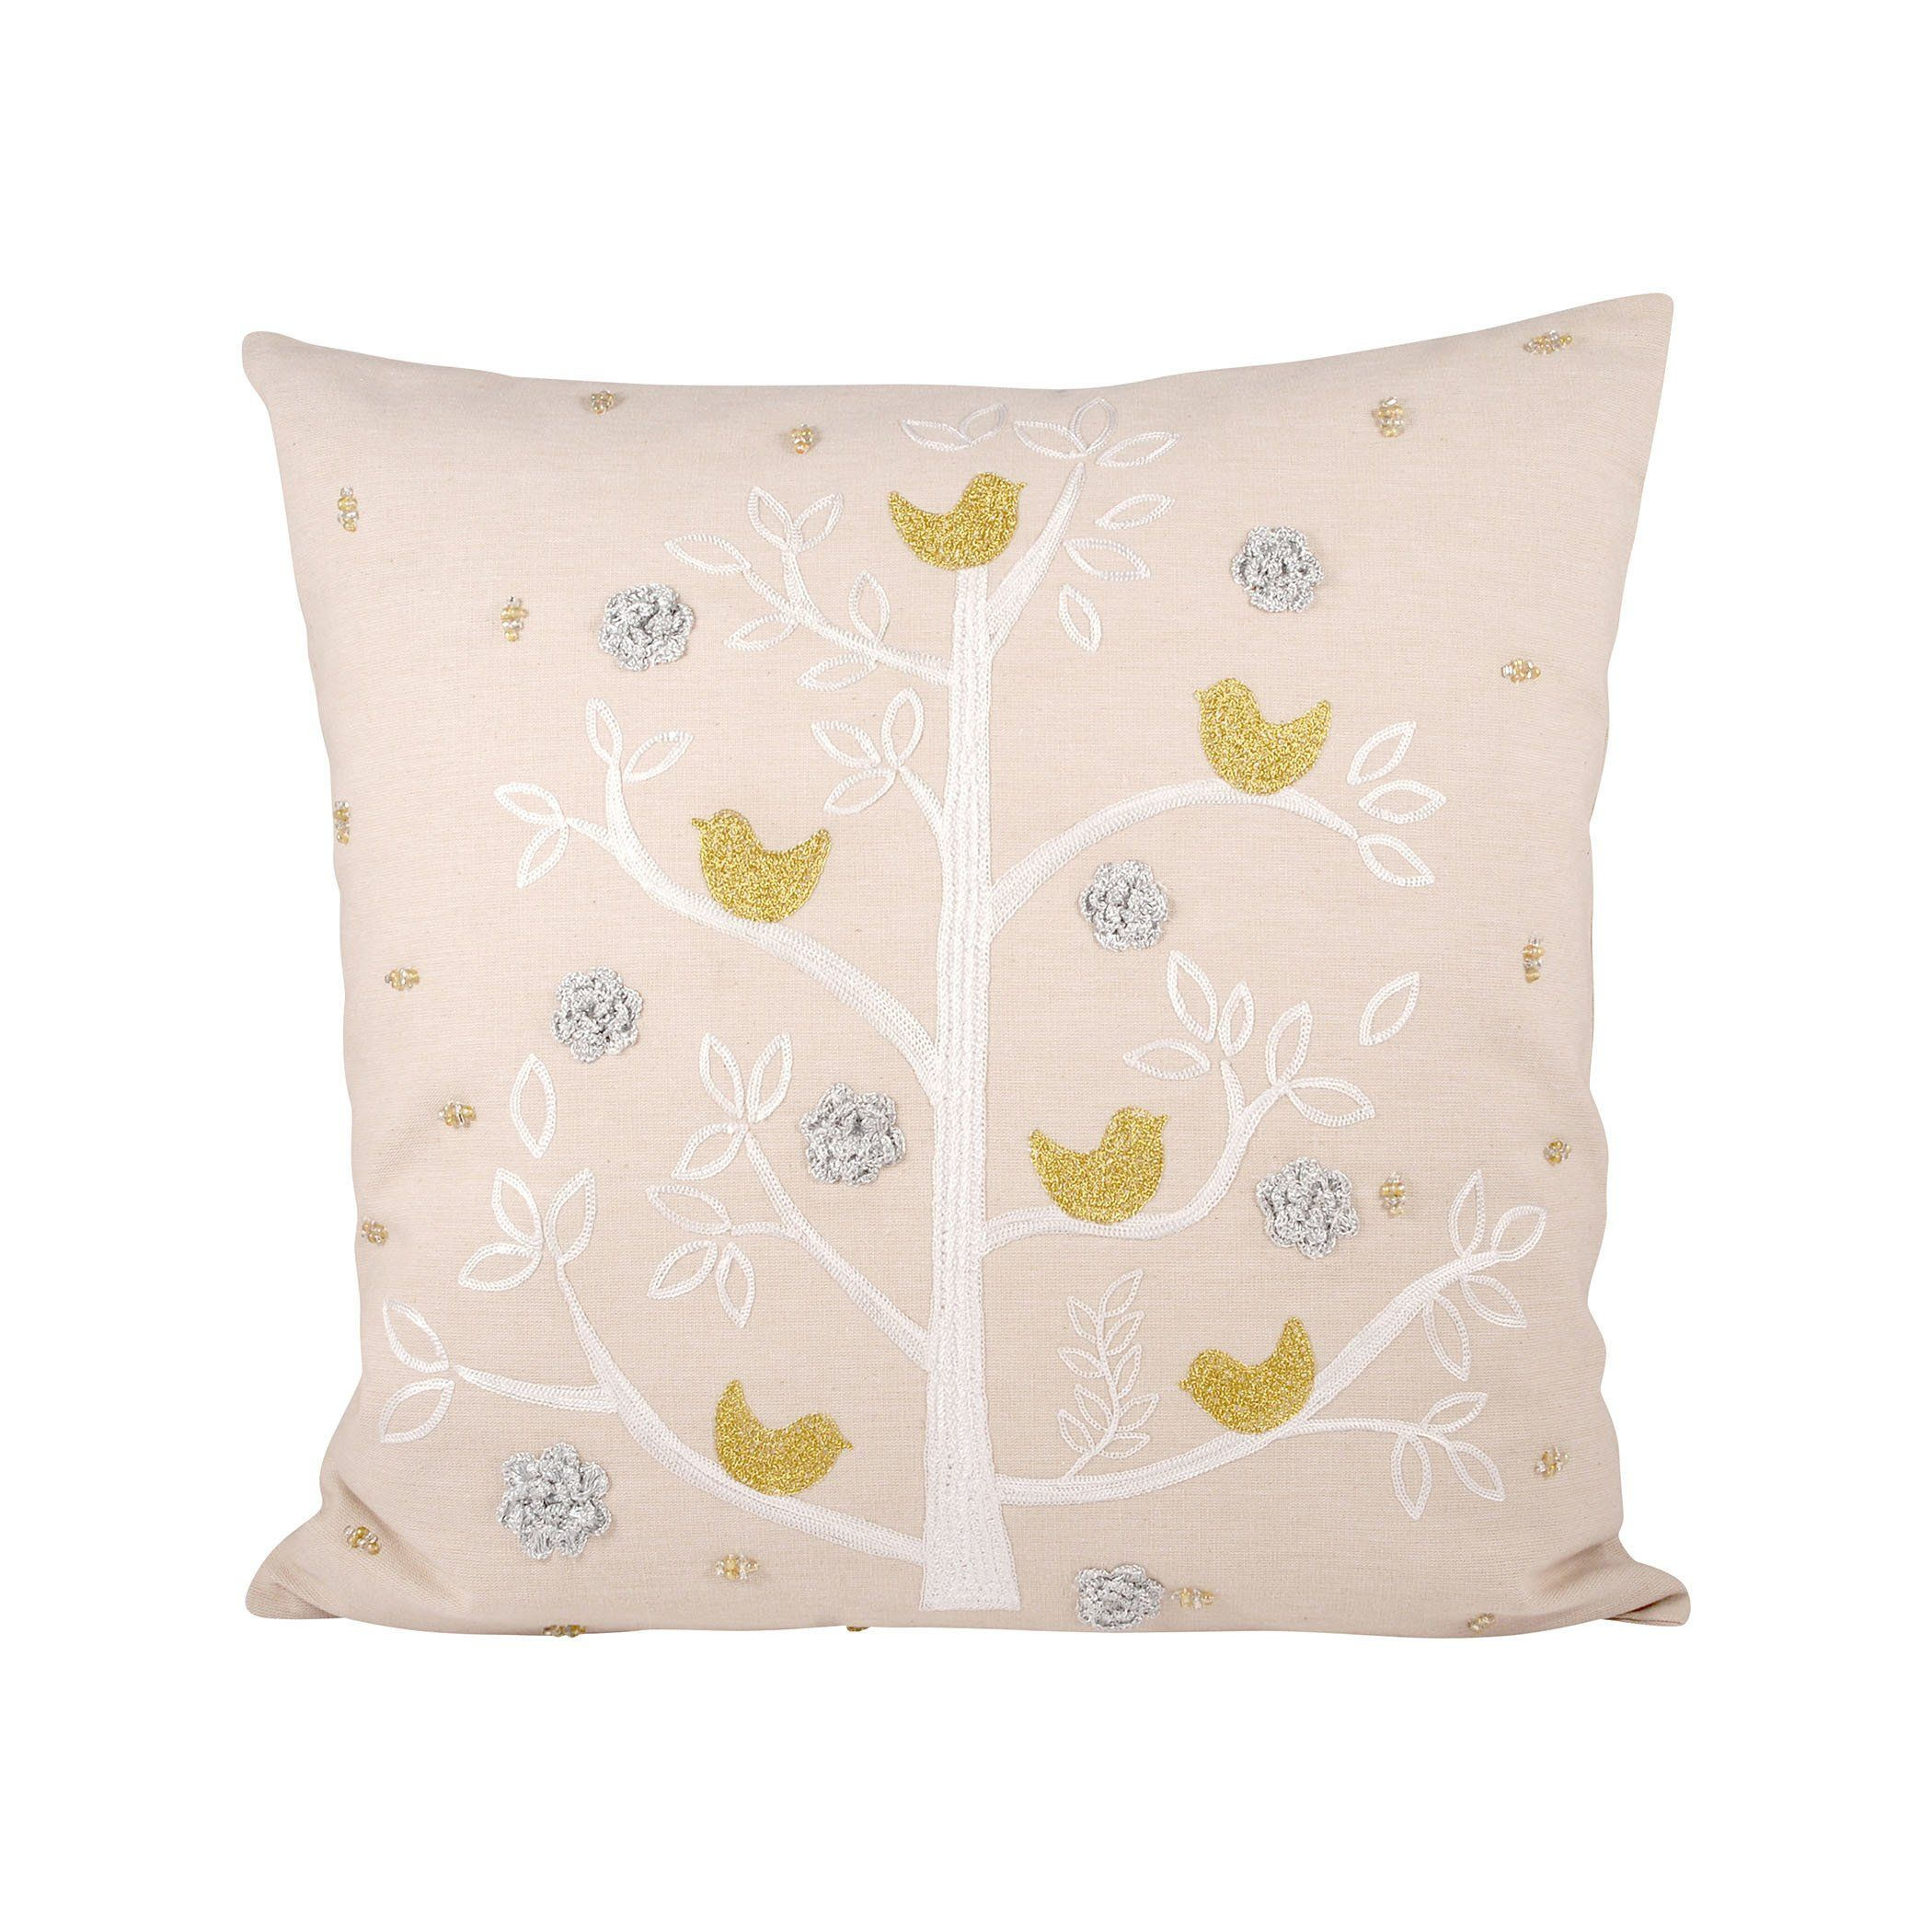 Pomeroy Holiday Partridge Pillow (Holiday Partridge Pillow